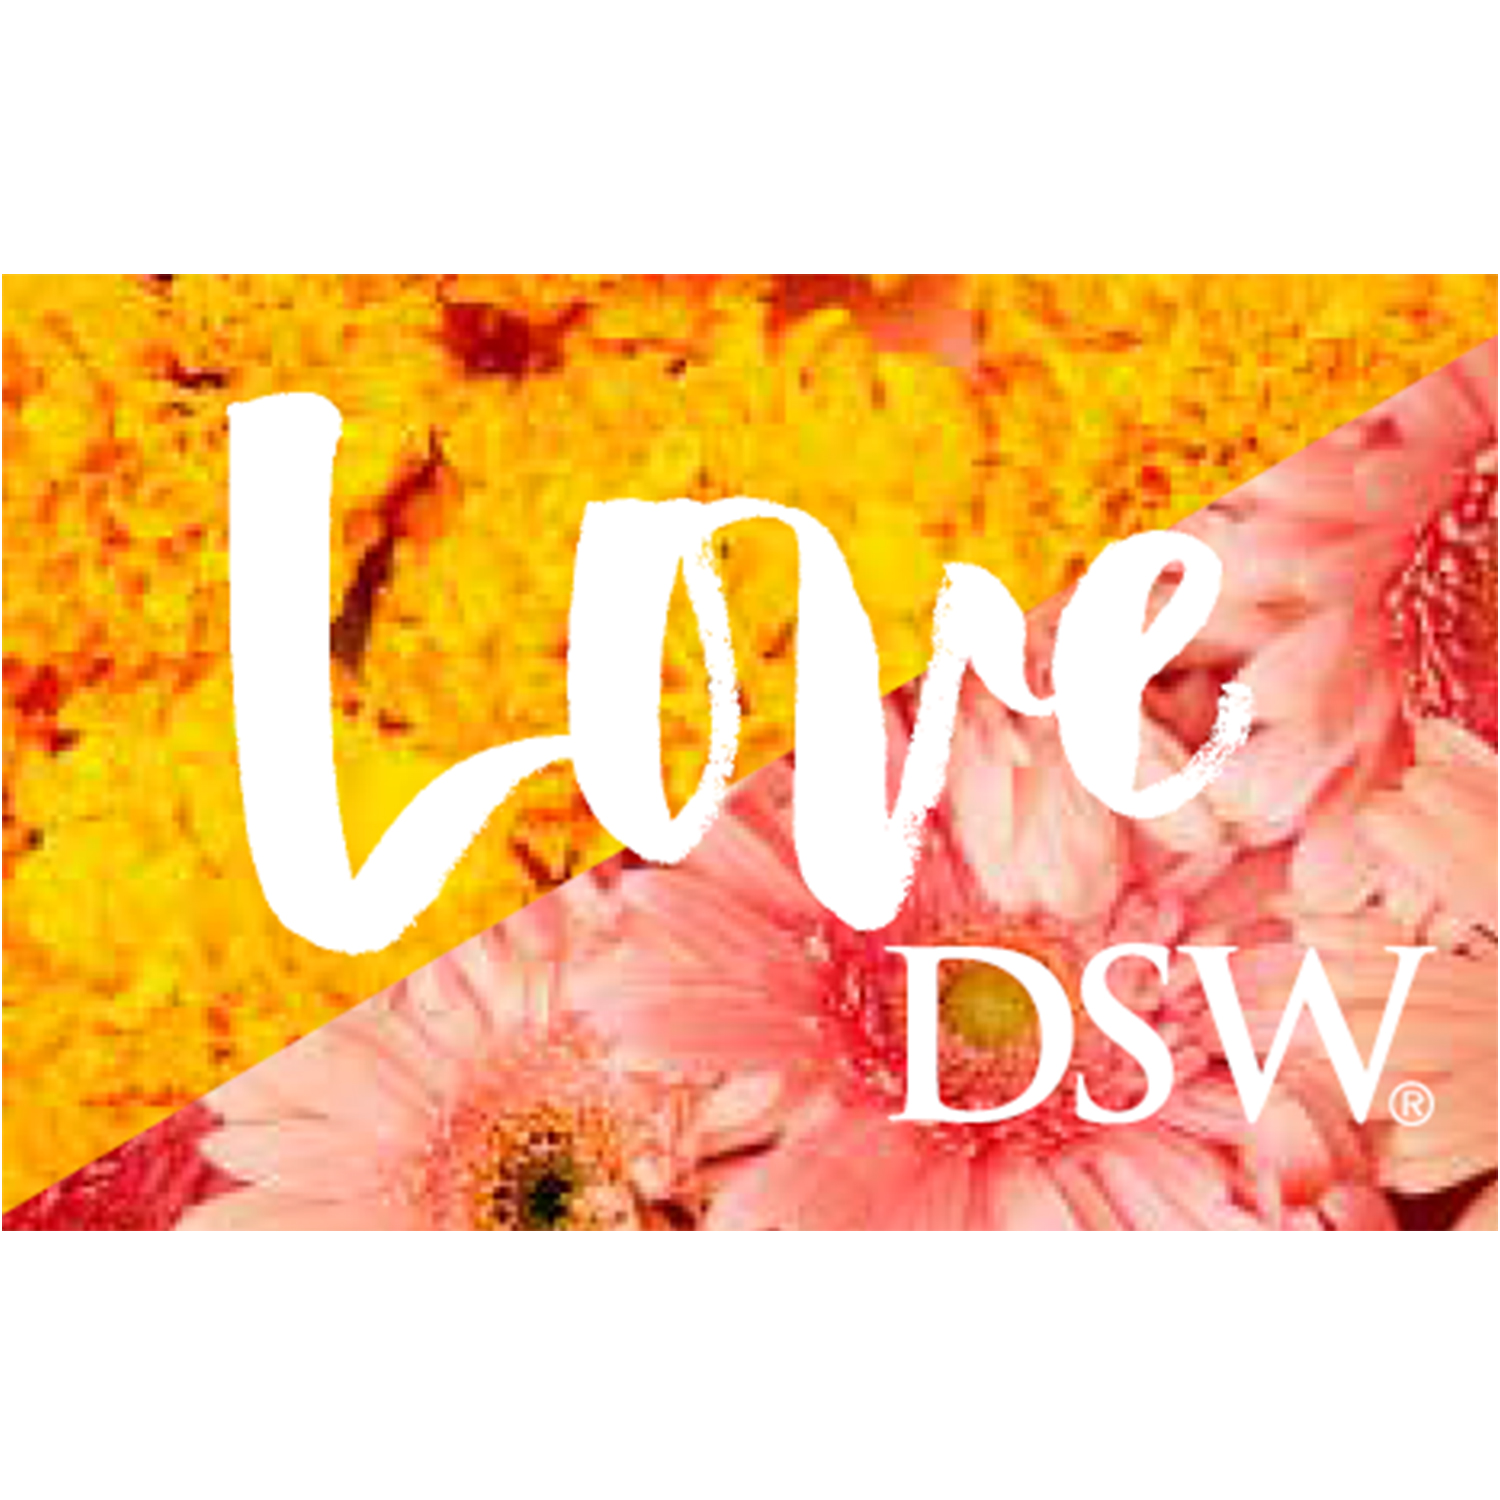 DSW - Love GC, 1 Pk = 20, Discontinued